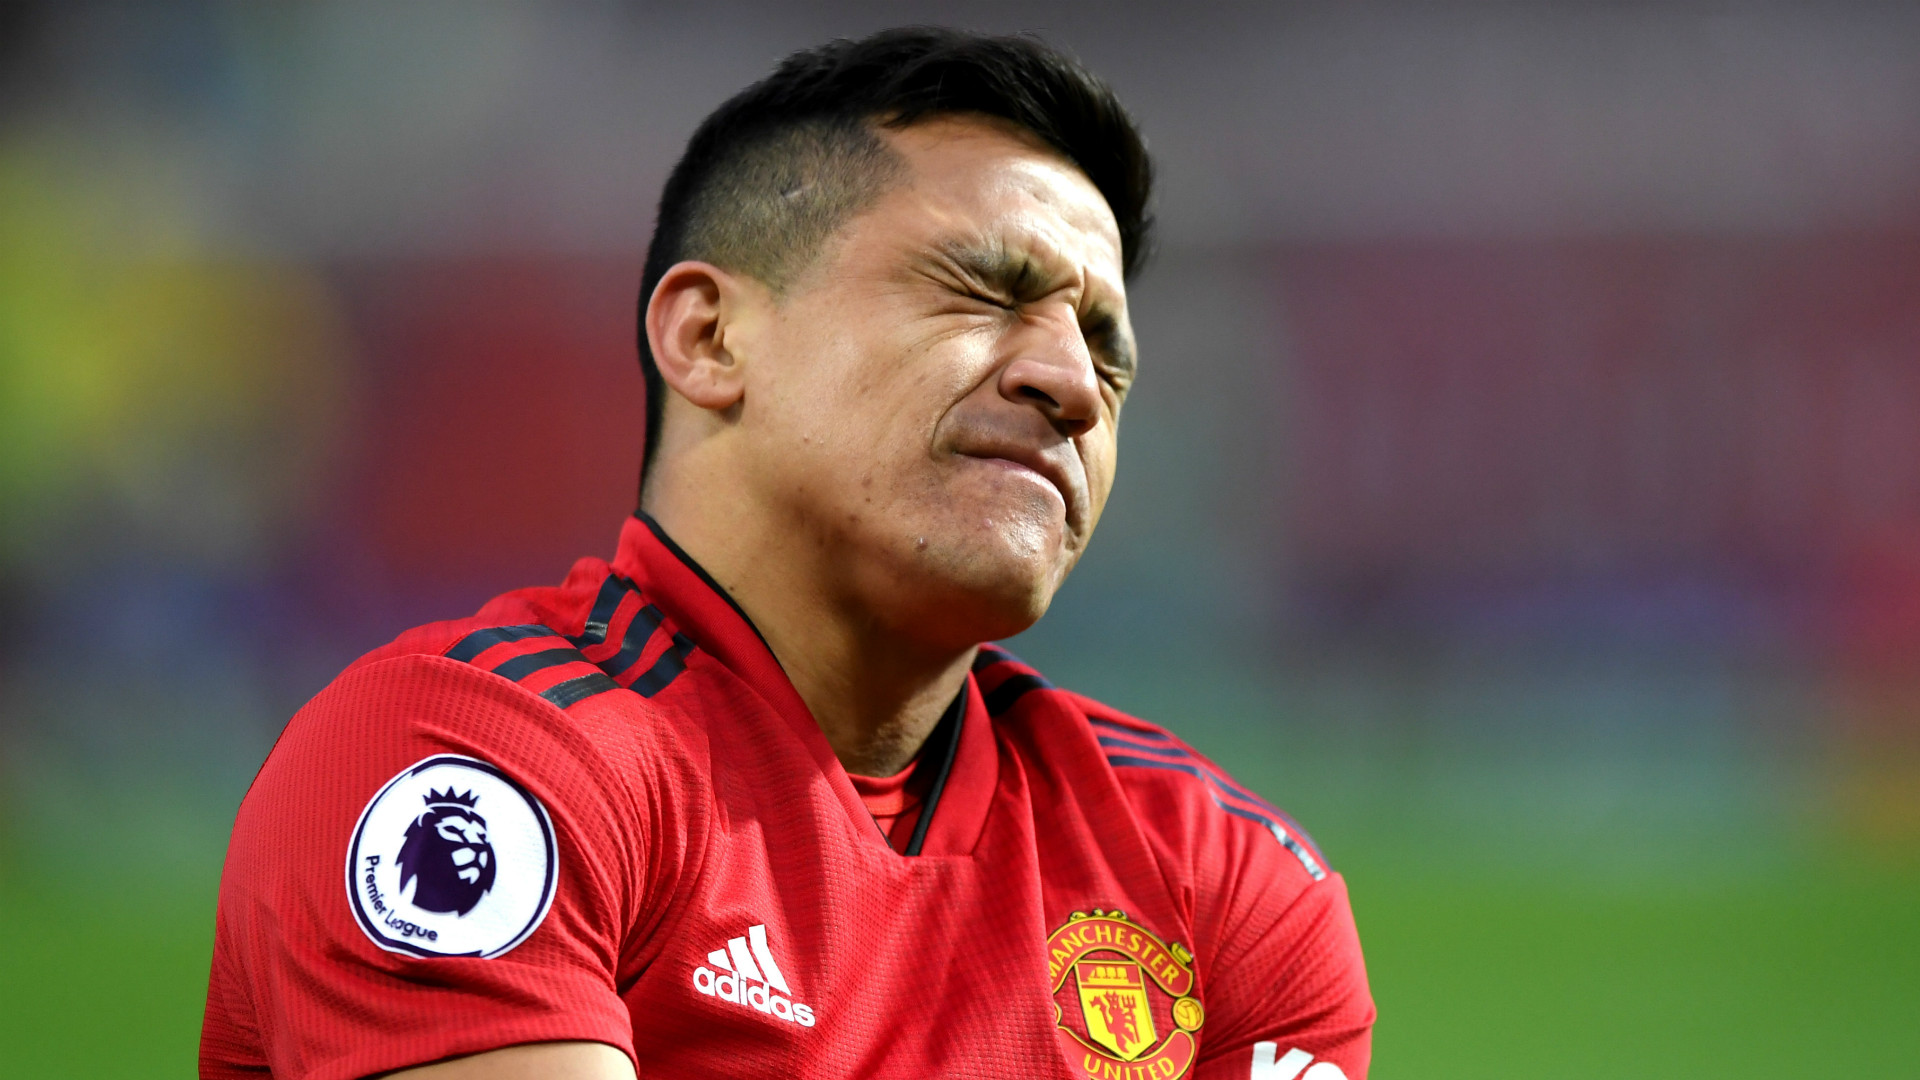 TRANSFER: Alexis Sanchez May Leave Man Utd To Join Atletico Madrid